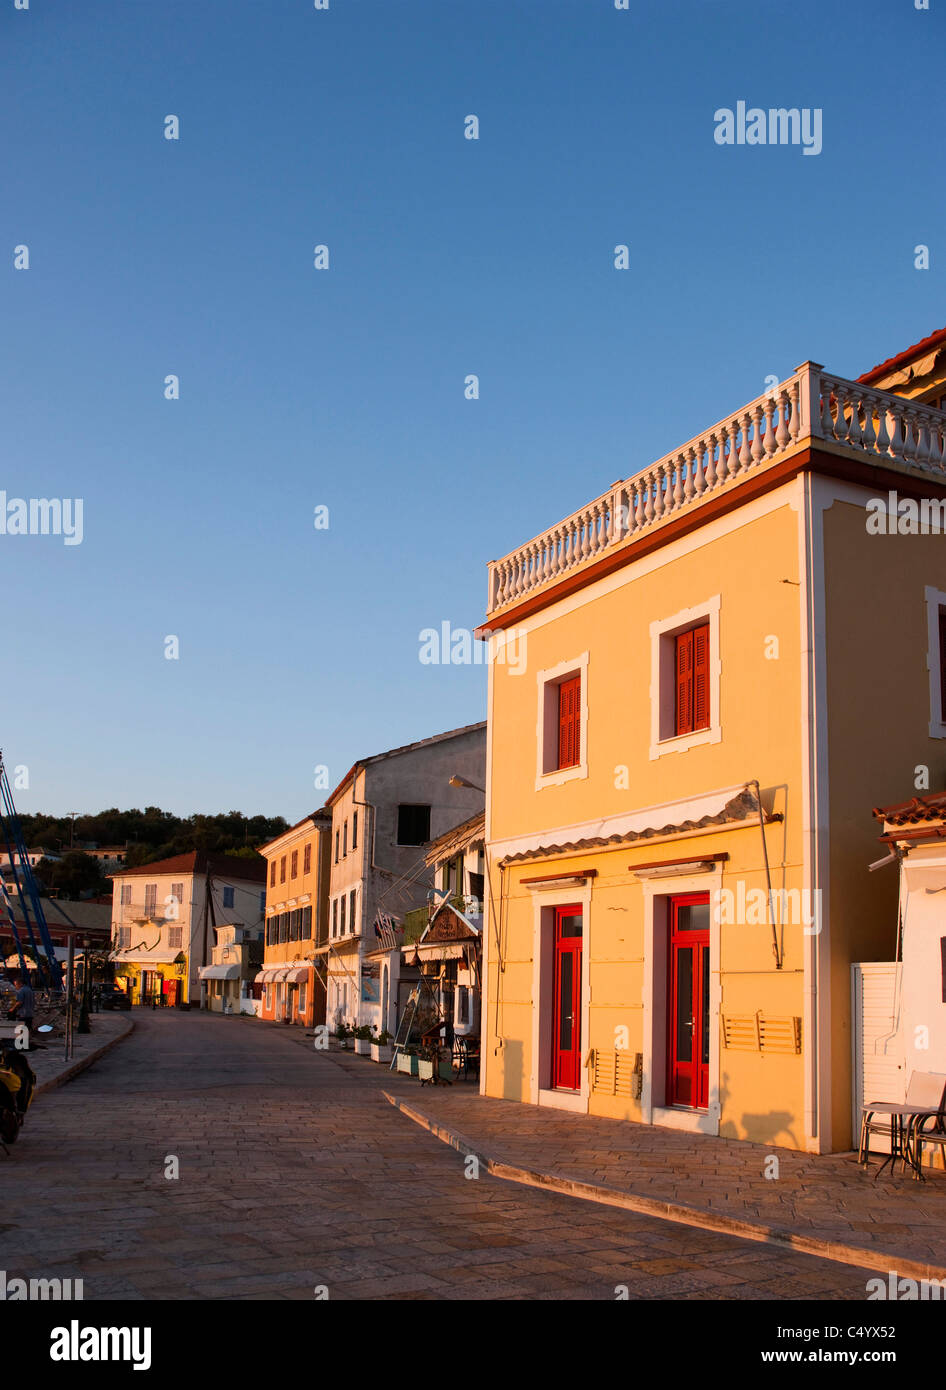 The sun rises over the waterfront stores of Gaios harbour. Paxos, Greece. - Stock Image